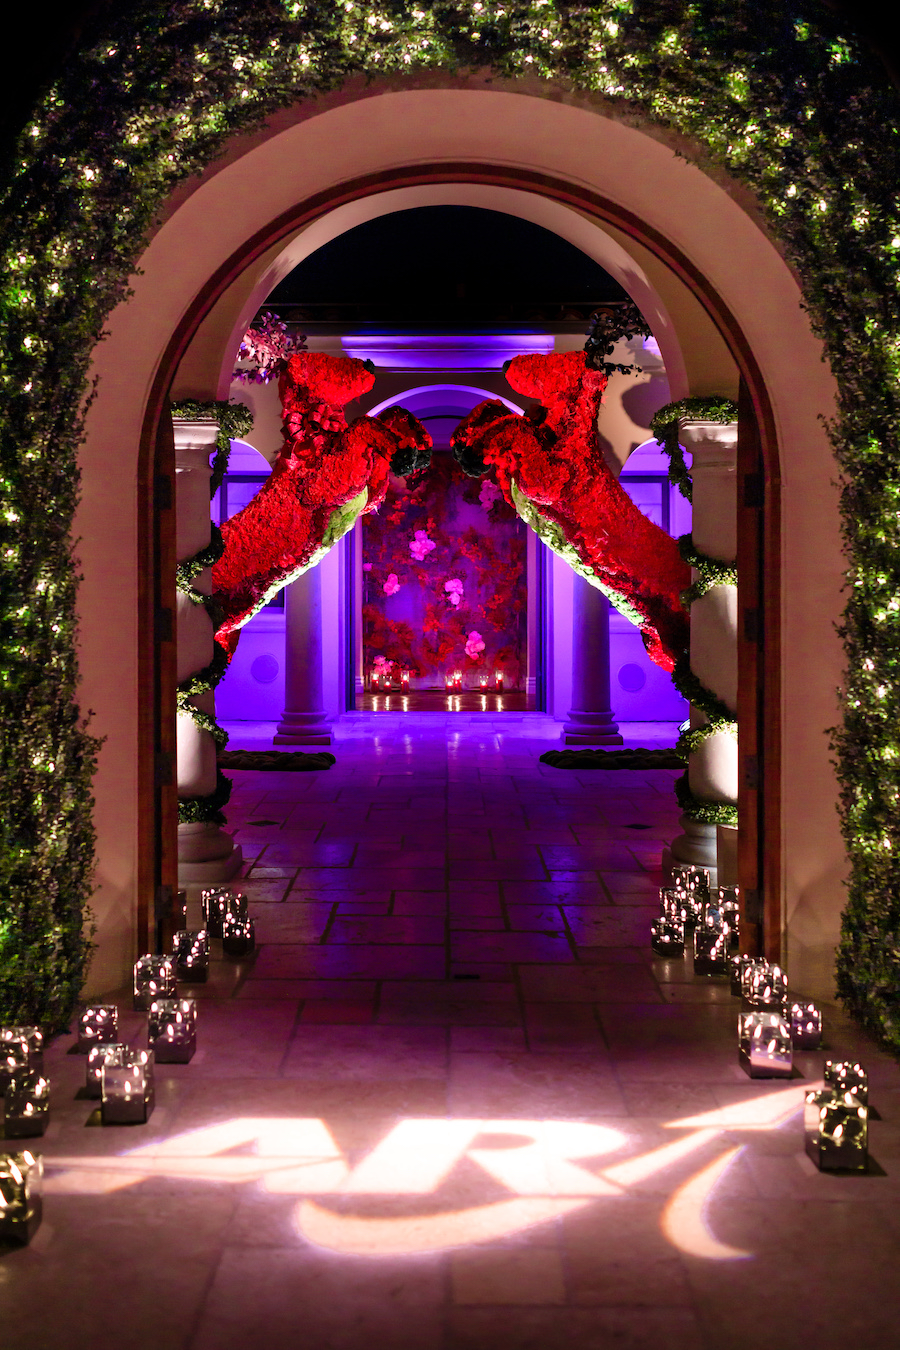 entryway with two large reindeers at holiday event